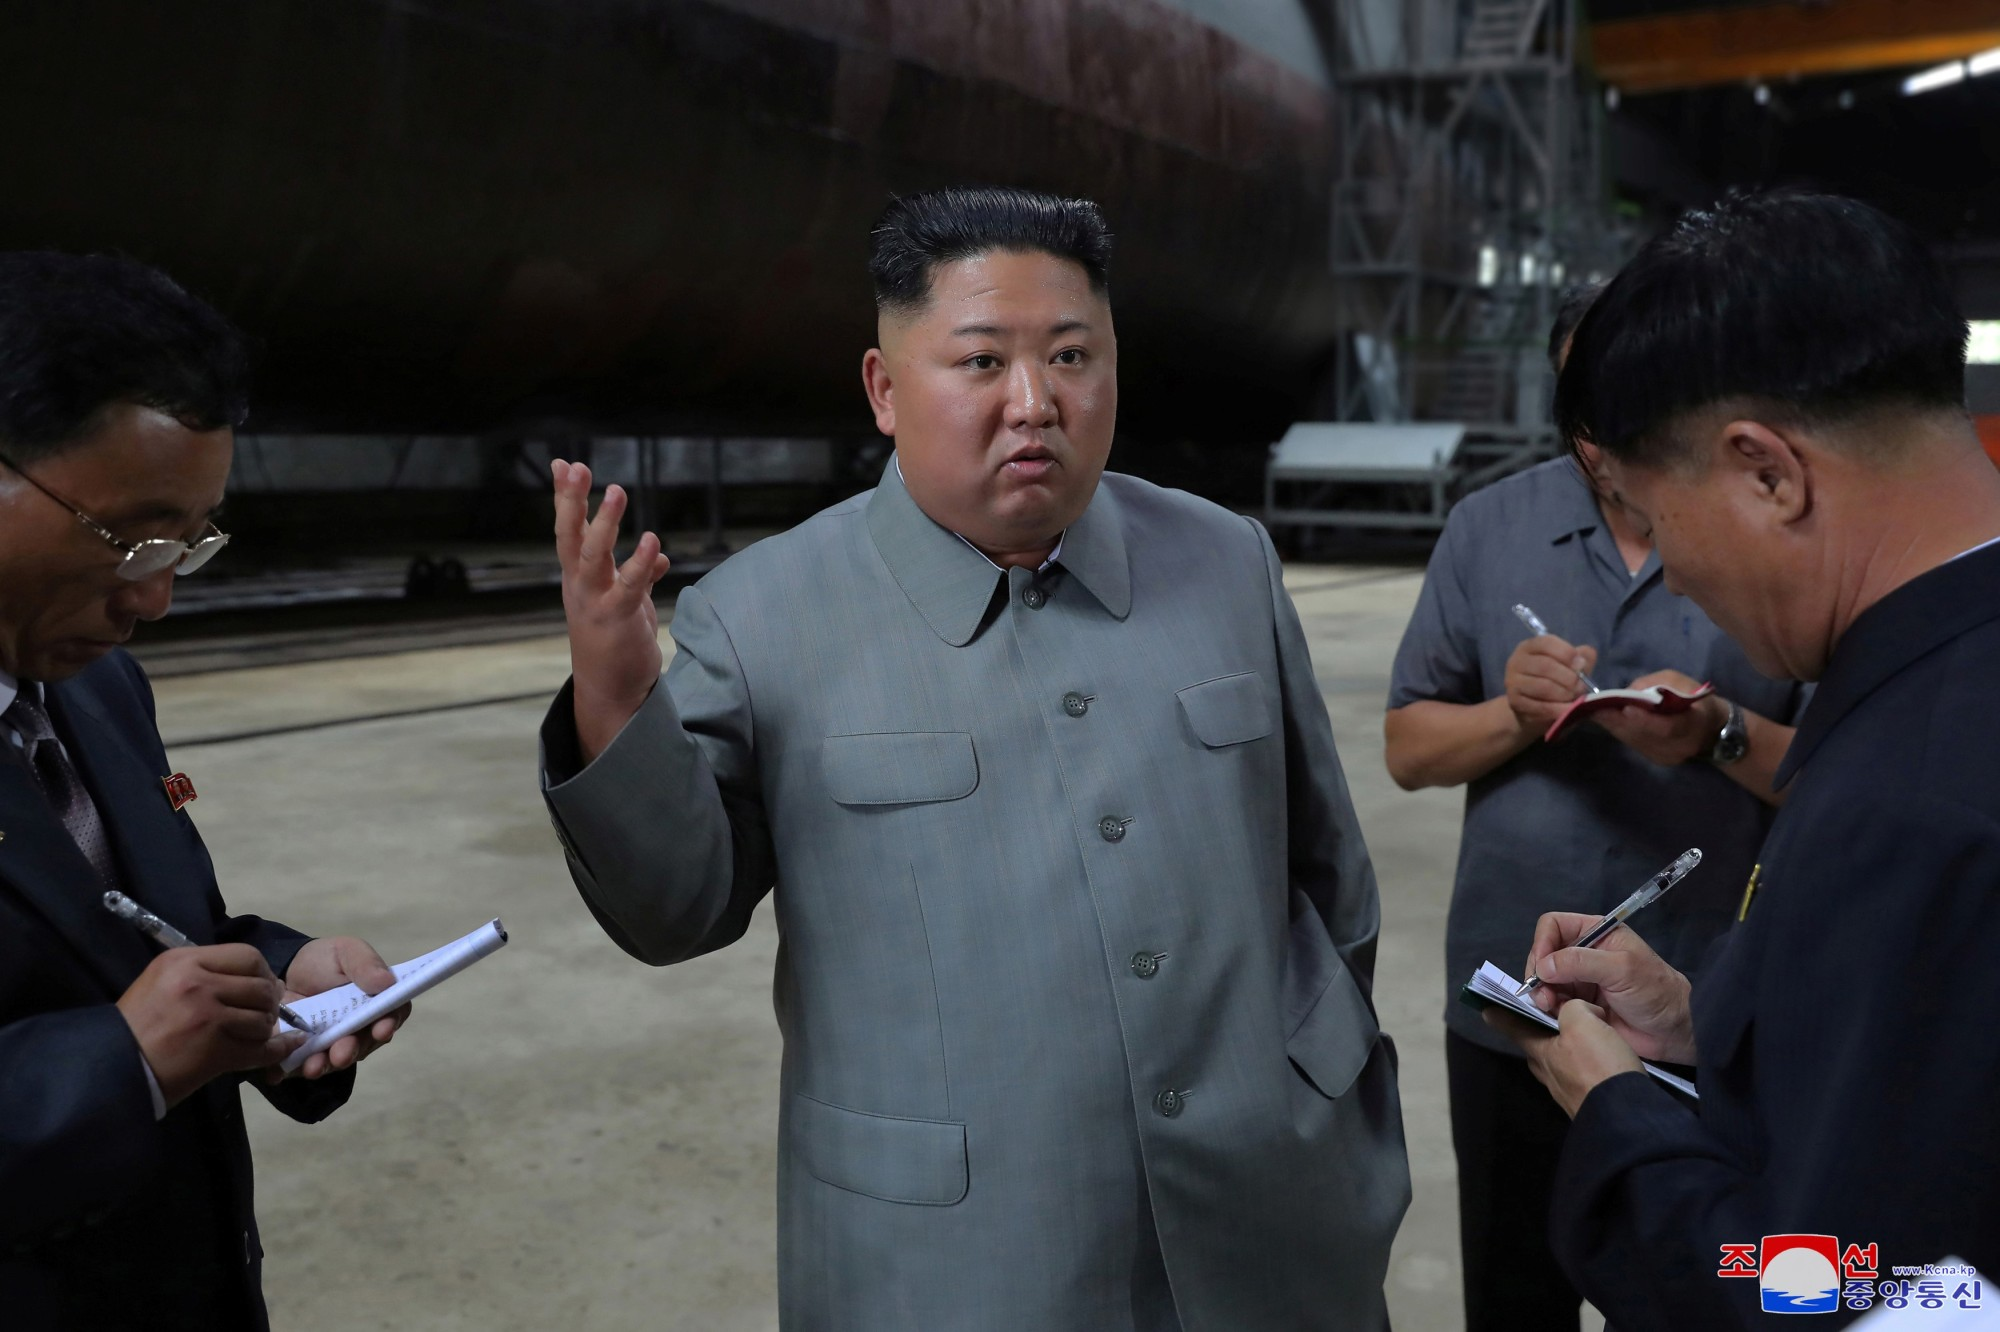 North Korean leader Kim Jong Un visits a submarine factory in an undisclosed location in North Korea in this undated picture released by North Korea's Central News Agency (KCNA) on Tuesday. The North on Wednesday reportedly fired unidentified projectiles from around Wonsan. | KCNA / VIA REUTERS